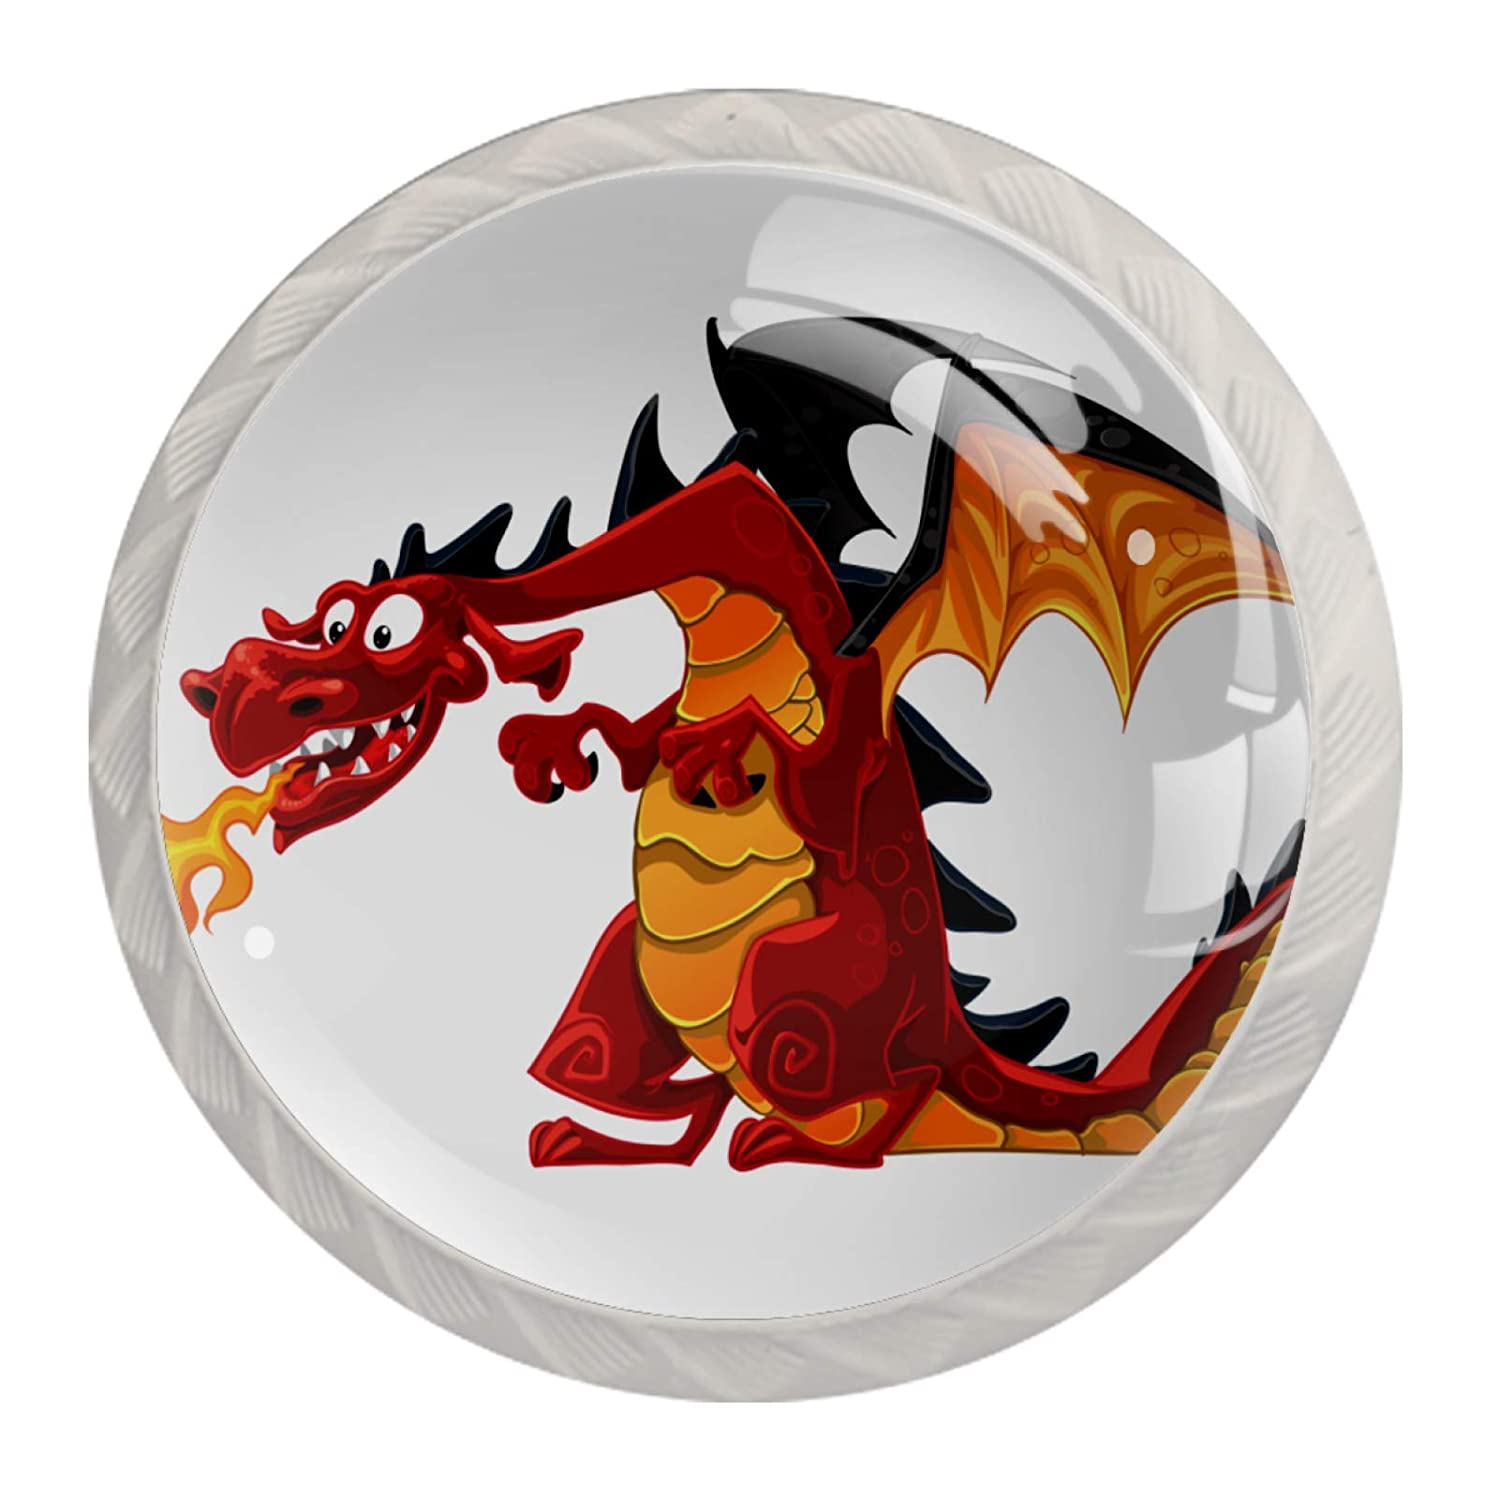 Kitchen Cabinet Knobs Red Fire-Breathing Dragon Kitchen Cabinet Knobs Clear Glass Bookcase Knobs for Boys Girls (4pcs) 1.38x1.10IN